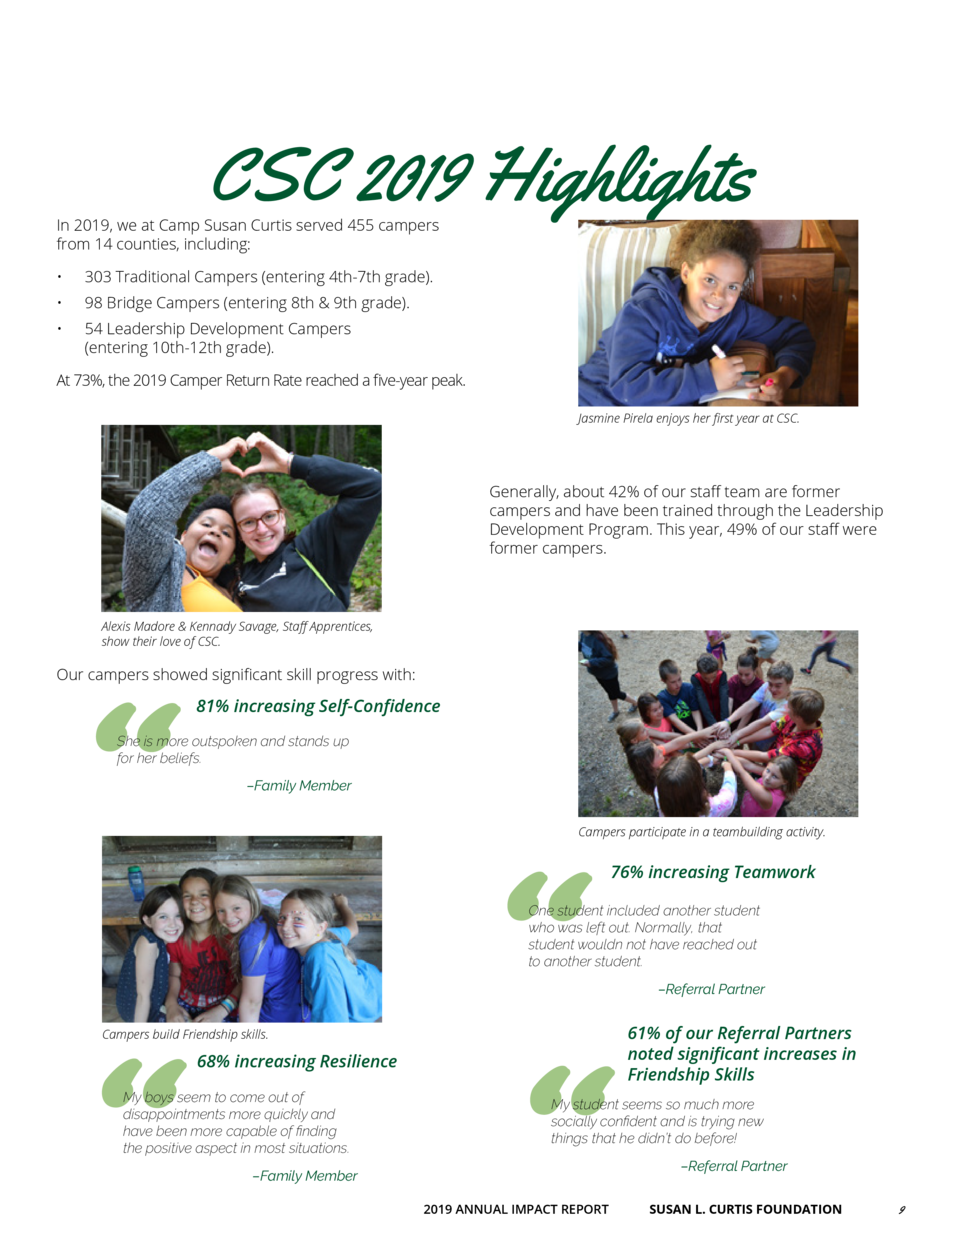 CSC 2019 Highlights  In 2019, we at Camp Susan Curtis served 455 campers from 14 counties, including        303 Traditiona...